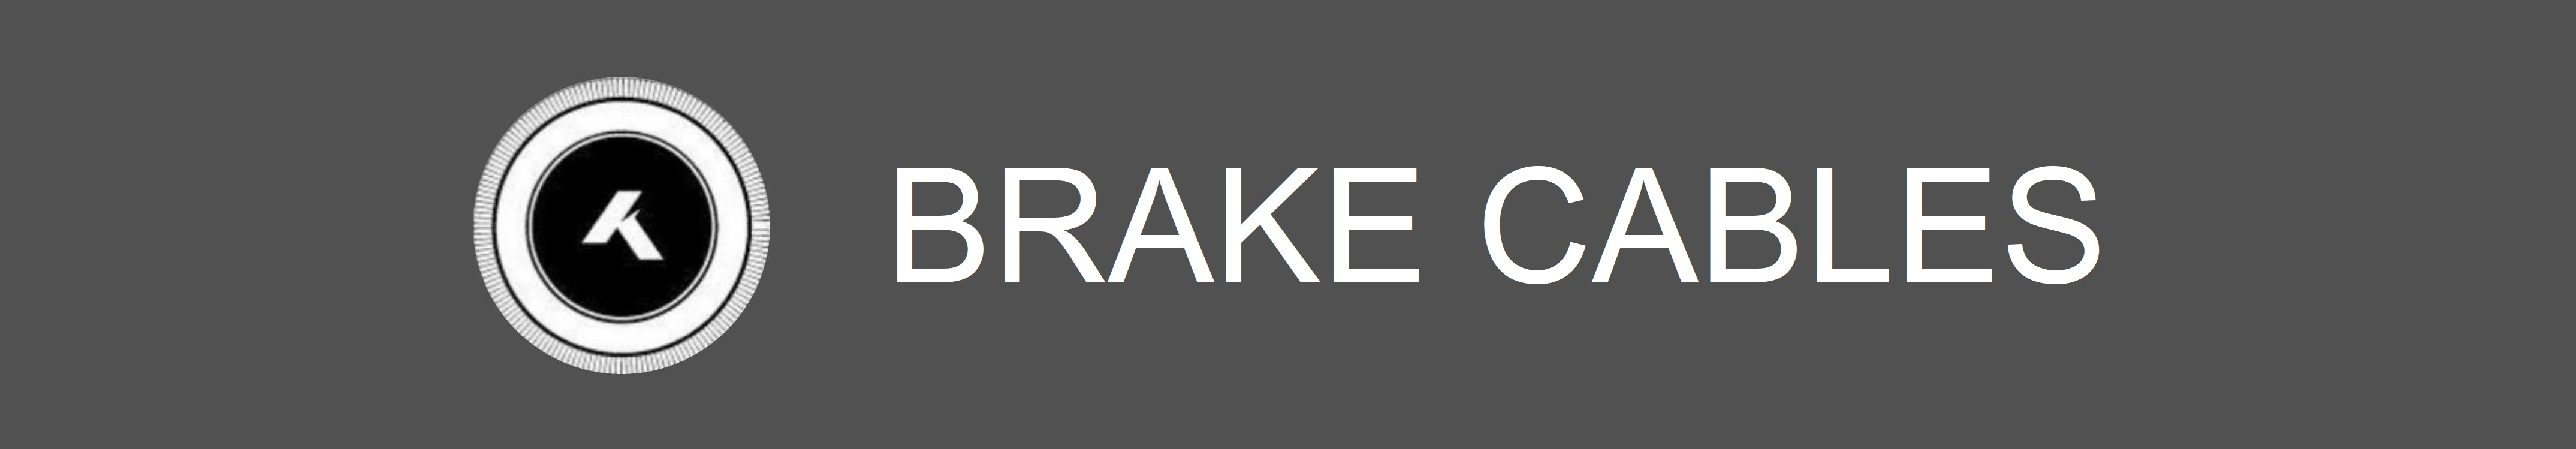 Brake-Cables